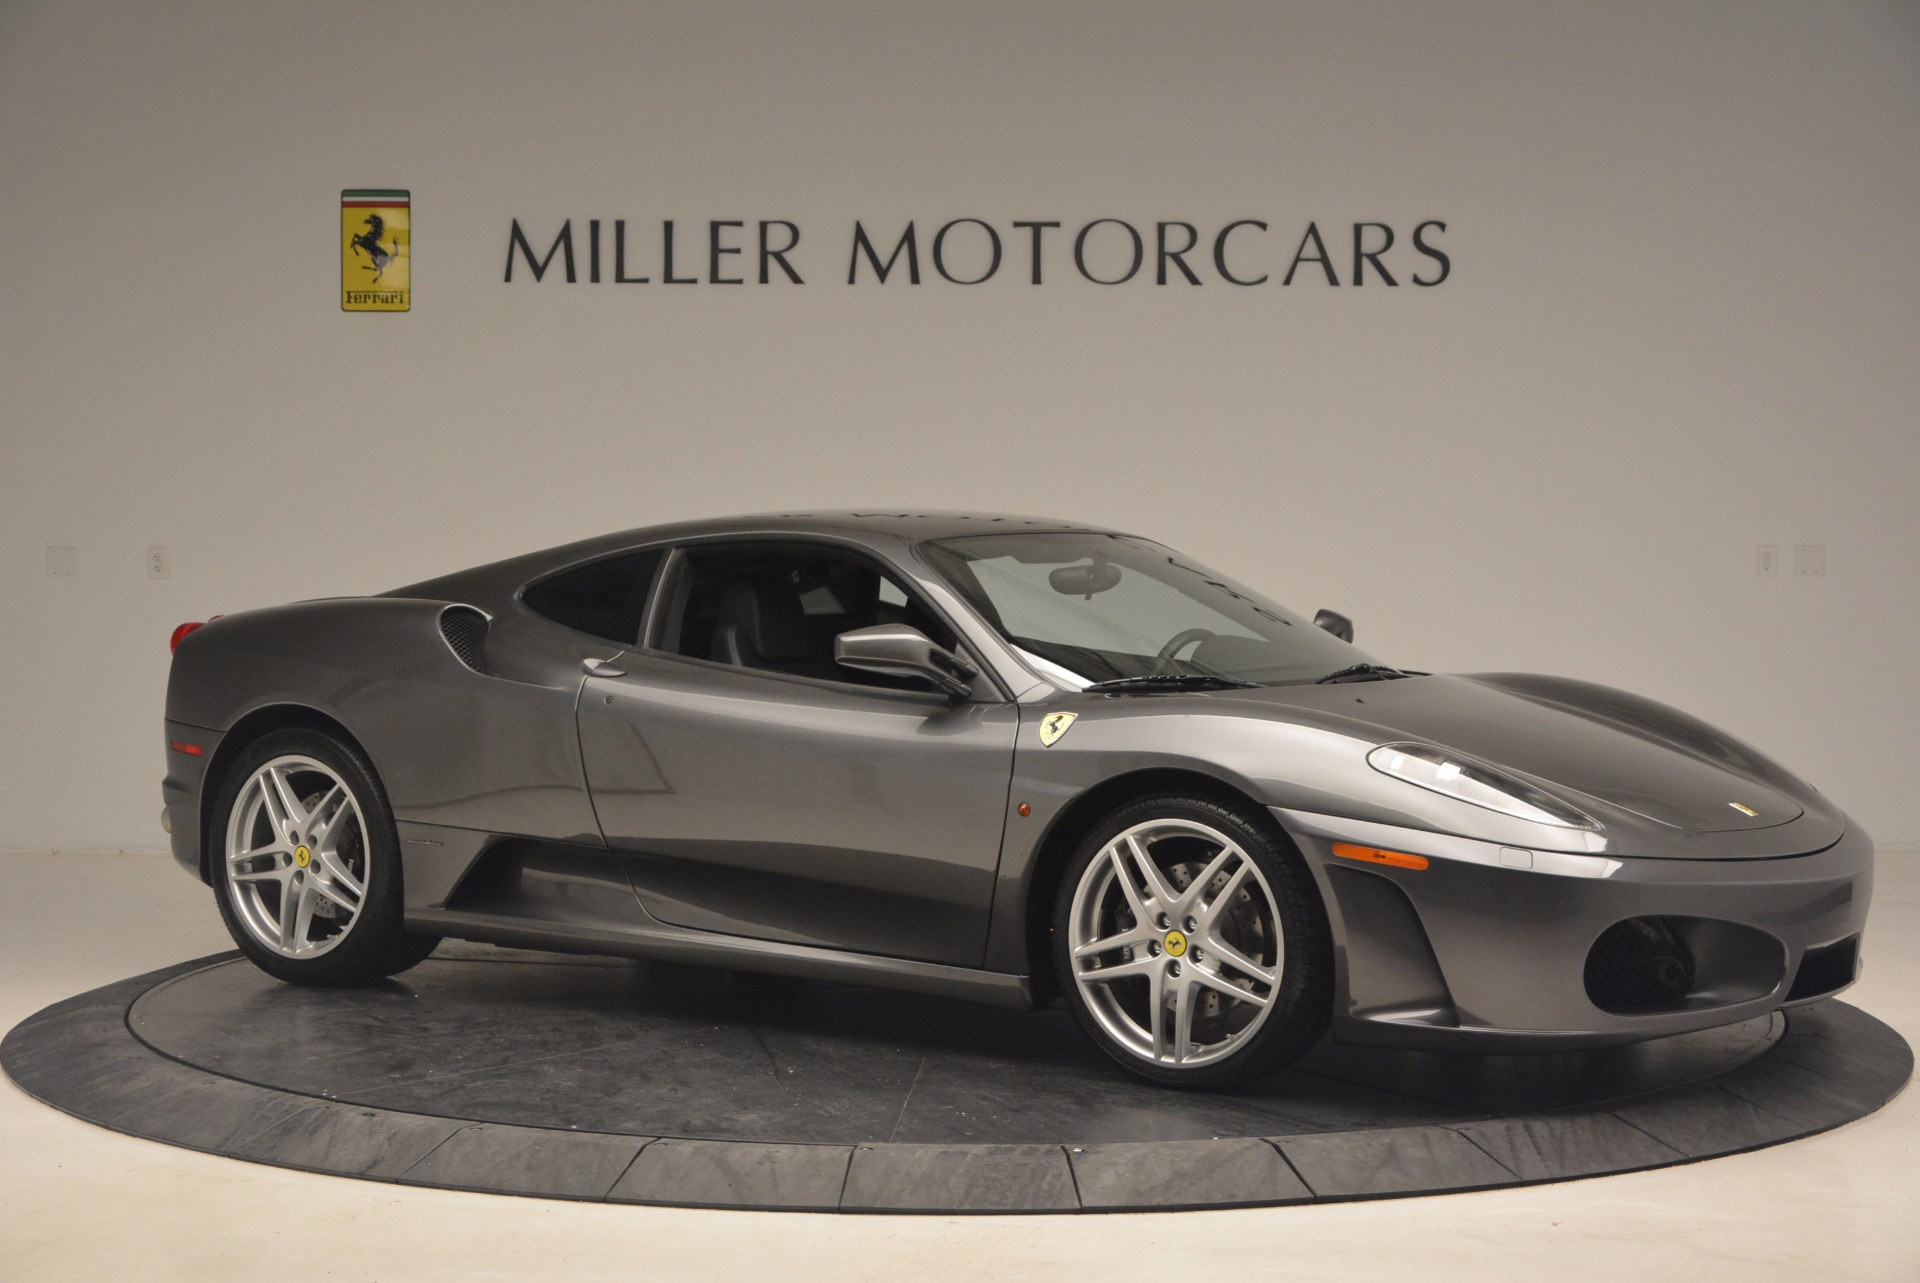 Used 2005 Ferrari F430 6-Speed Manual For Sale In Greenwich, CT 1286_p10